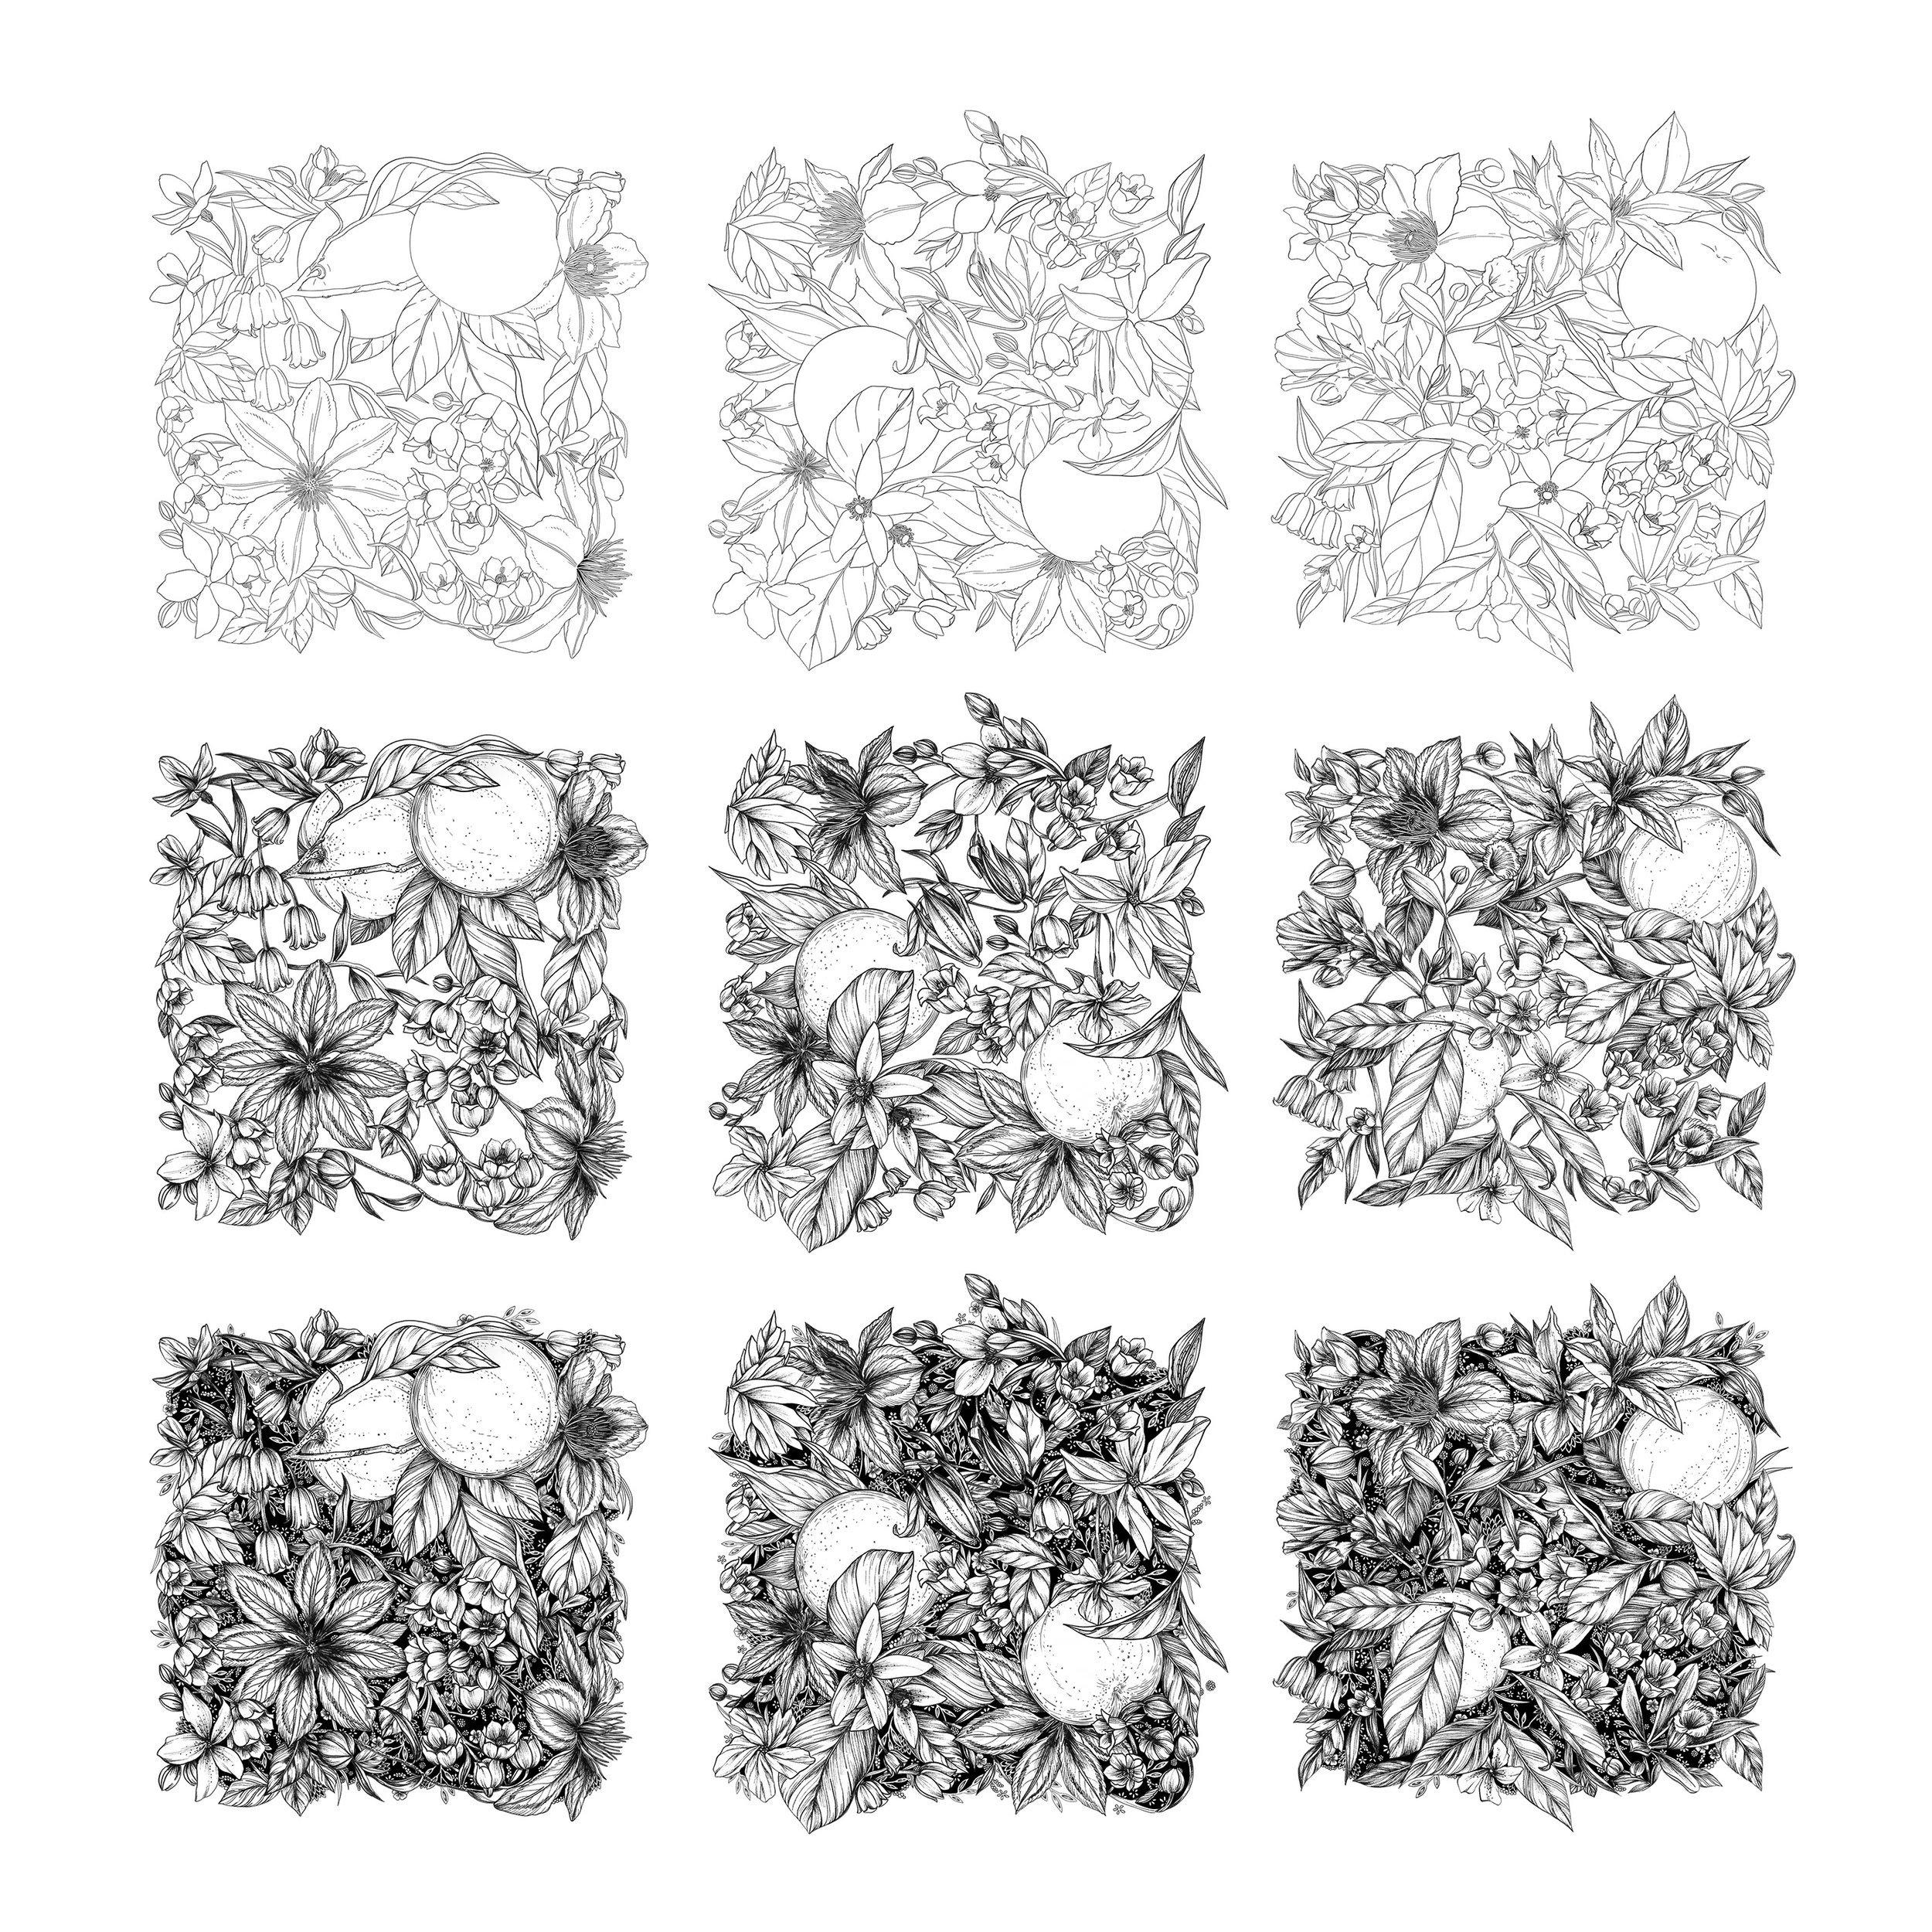 Three illustrated pattern tiles, from sketch to completion - Maggie Enterrios